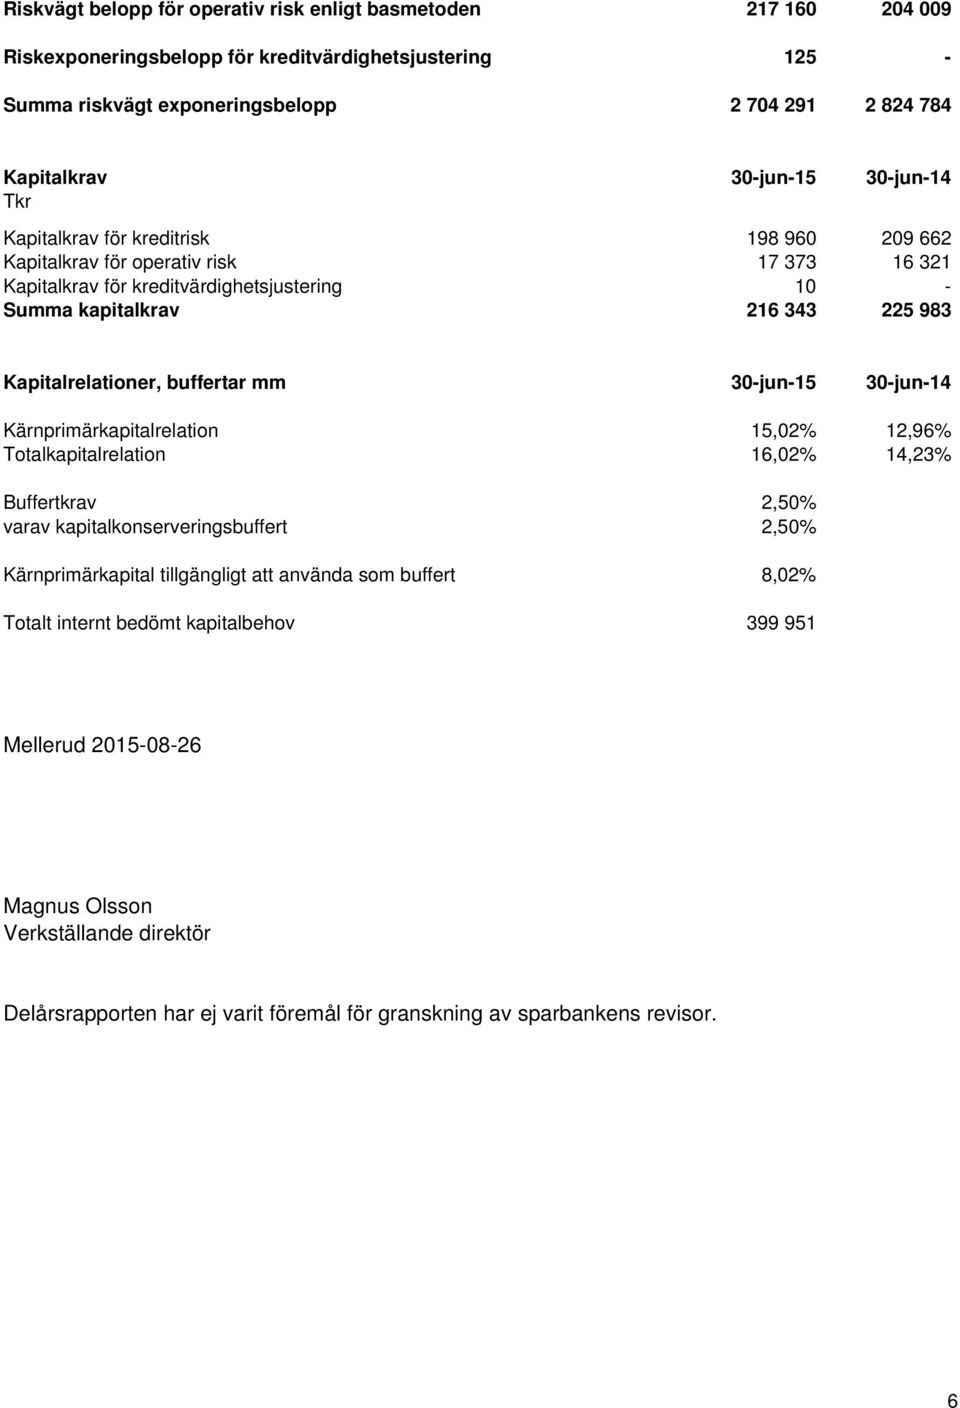 Kapitalrelationer, buffertar mm 30-jun-15 30-jun-14 Kärnprimärkapitalrelation 15,02% 12,96% Totalkapitalrelation 16,02% 14,23% Buffertkrav 2,50% varav kapitalkonserveringsbuffert 2,50%